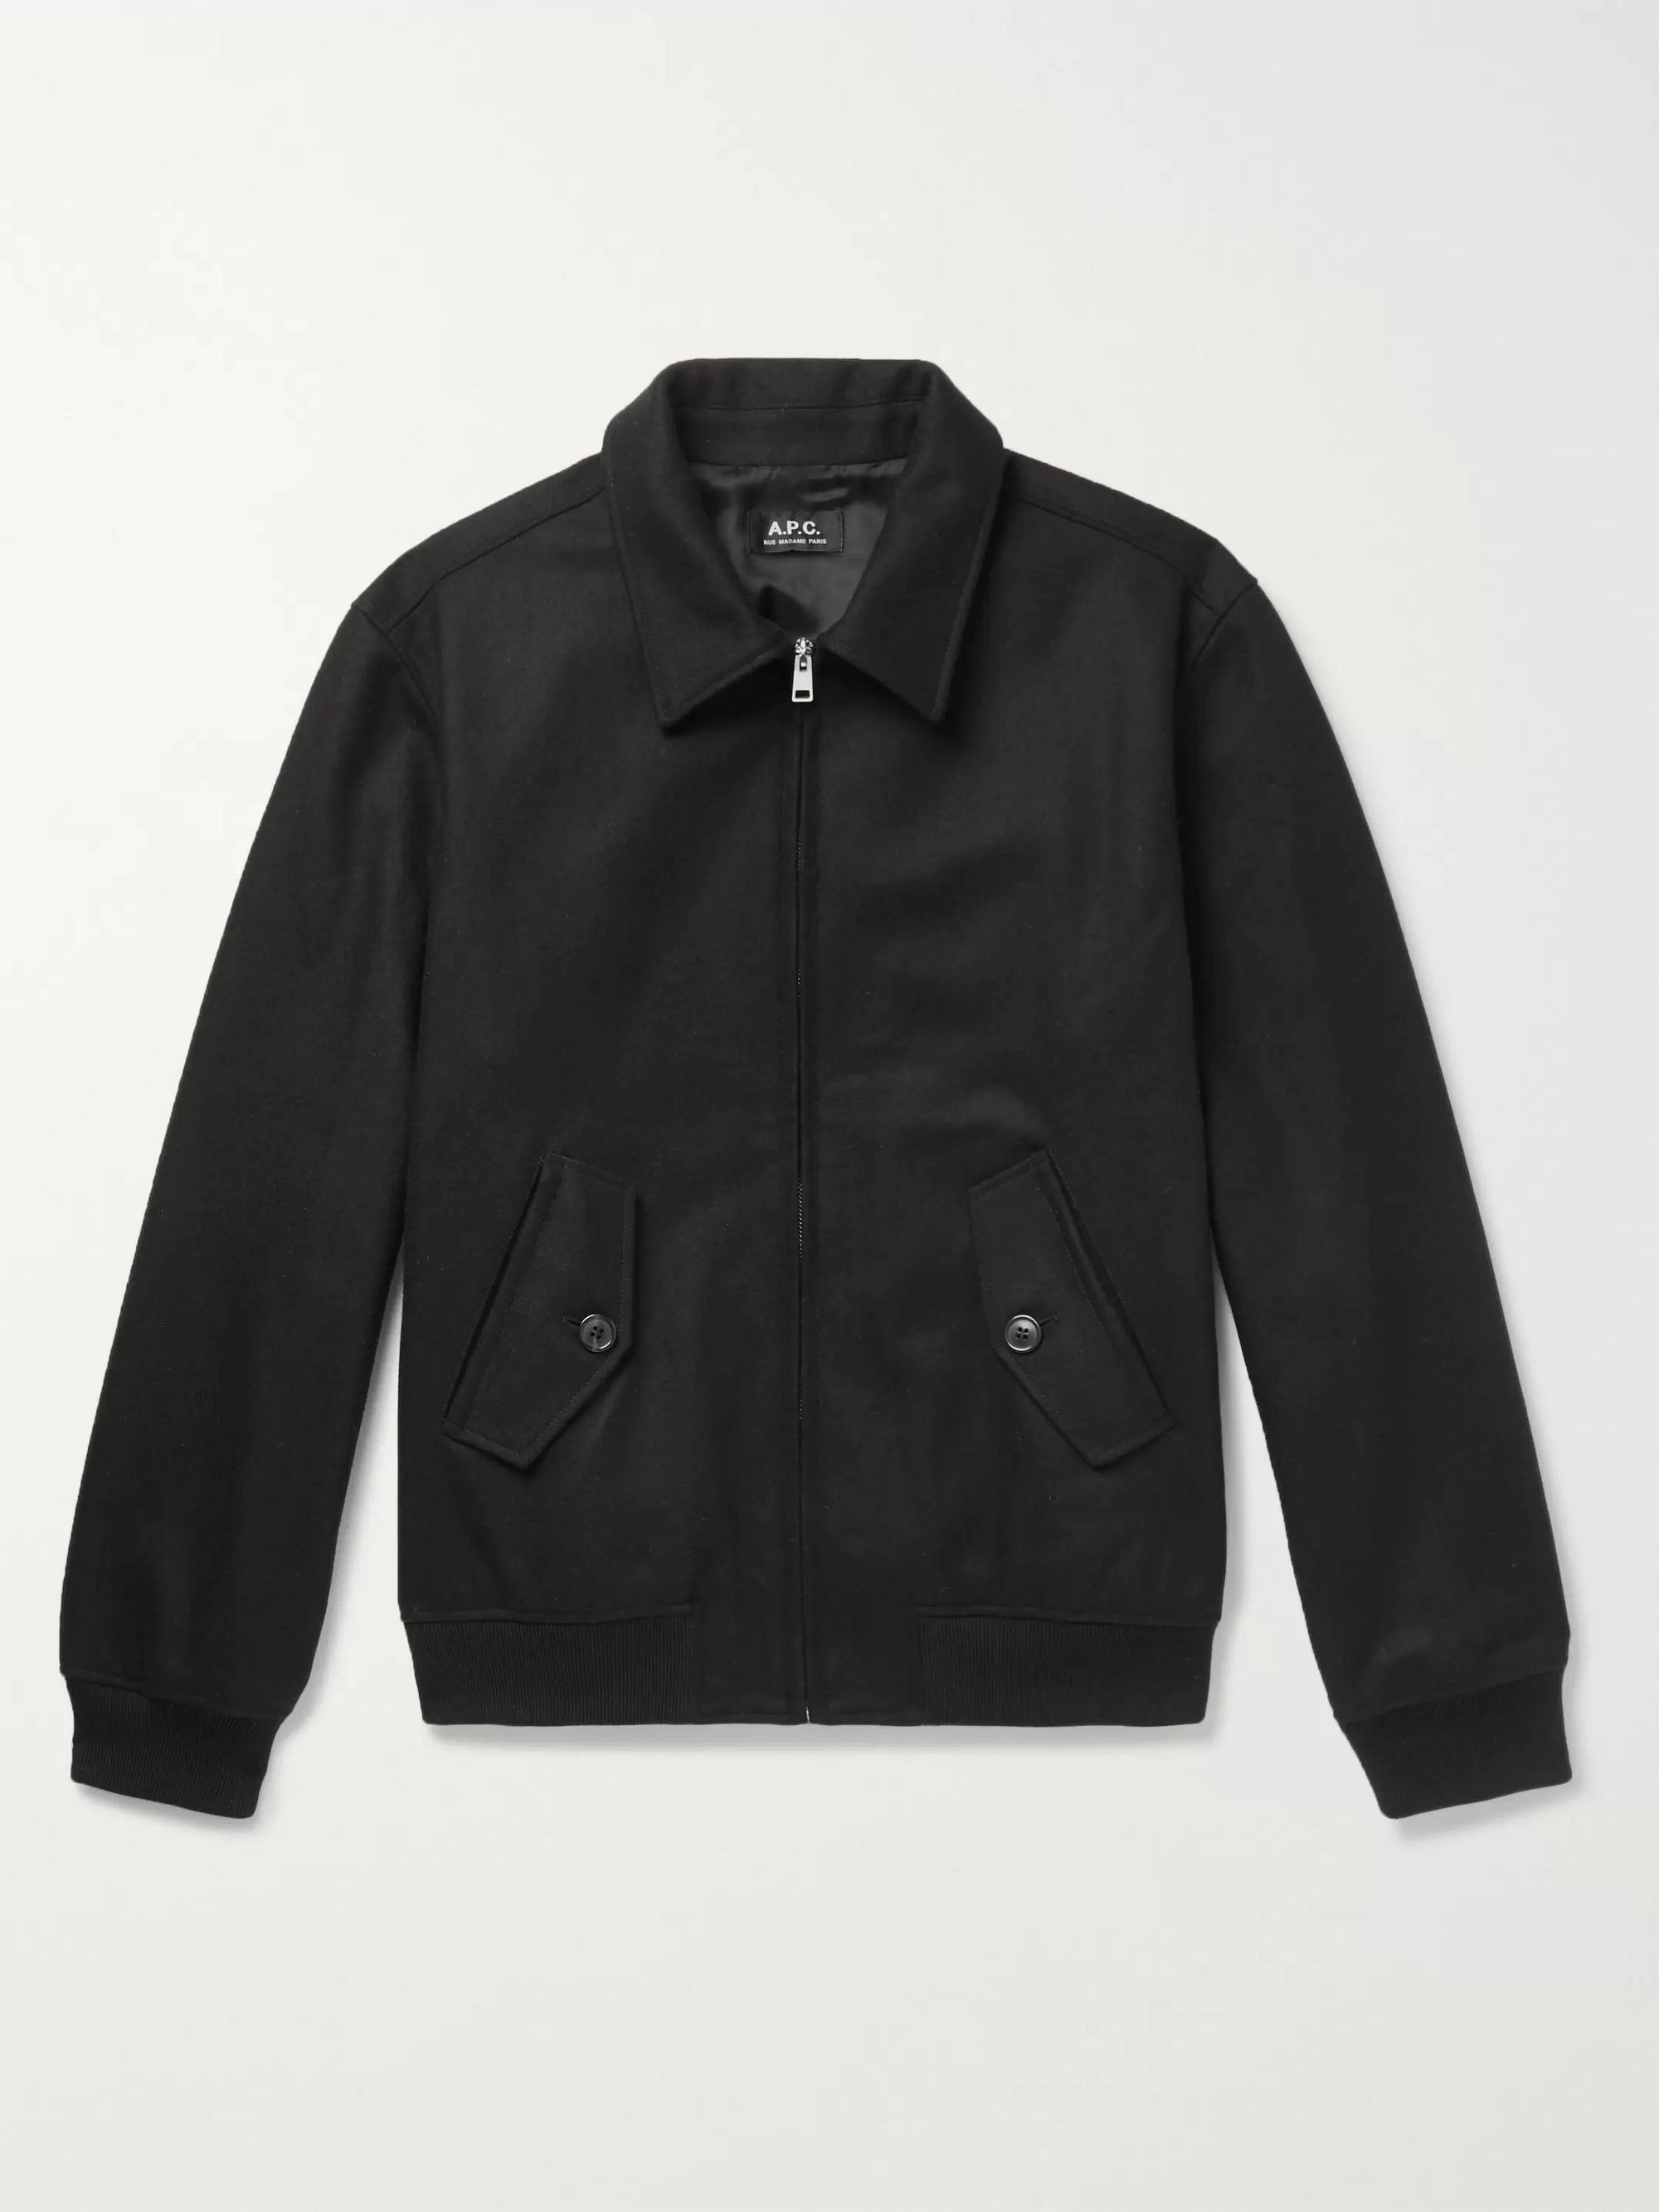 A.P.C. Gaspard Wool-Blend Bomber Jacket